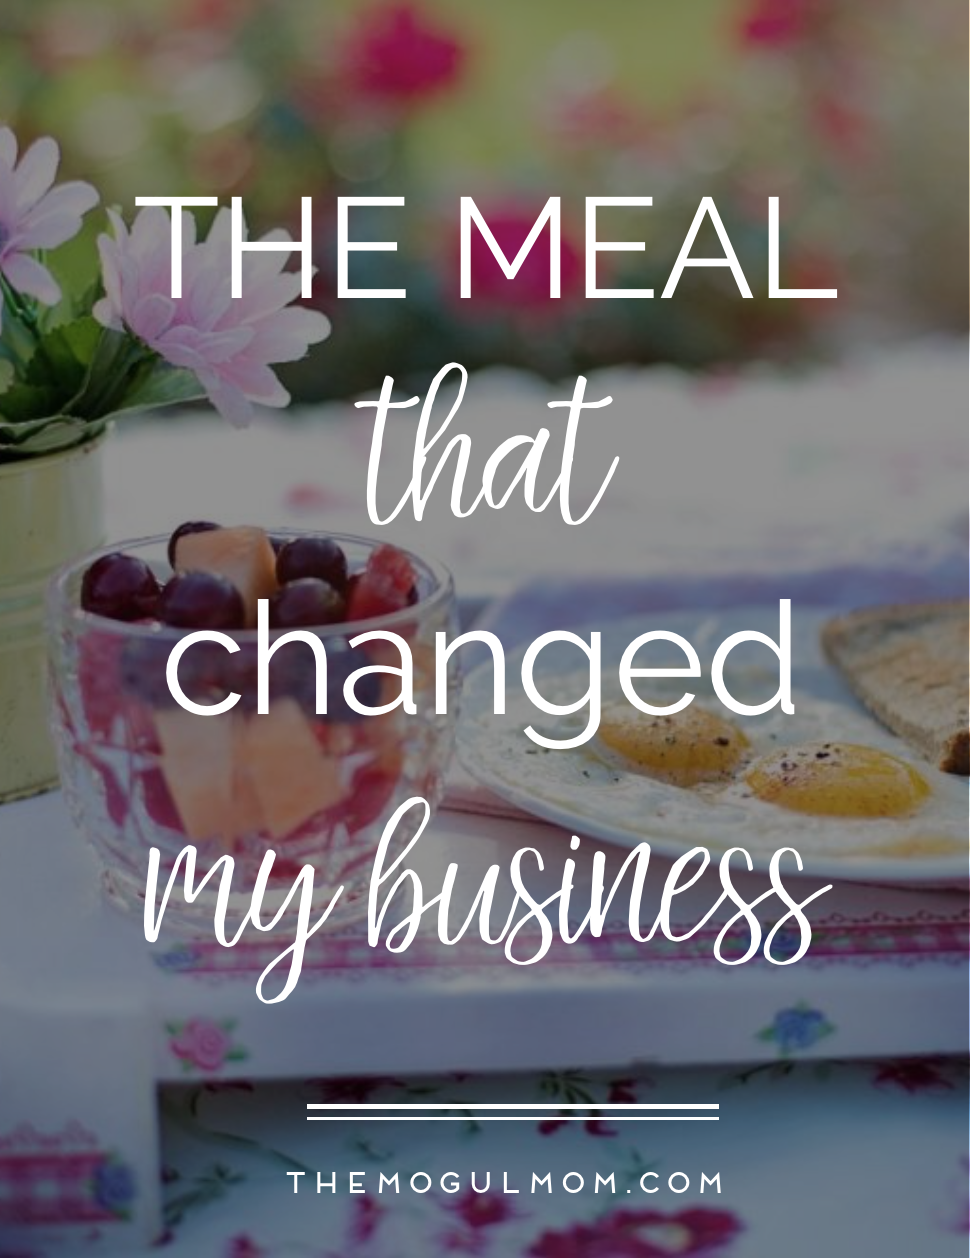 The Meal that Changed my Business